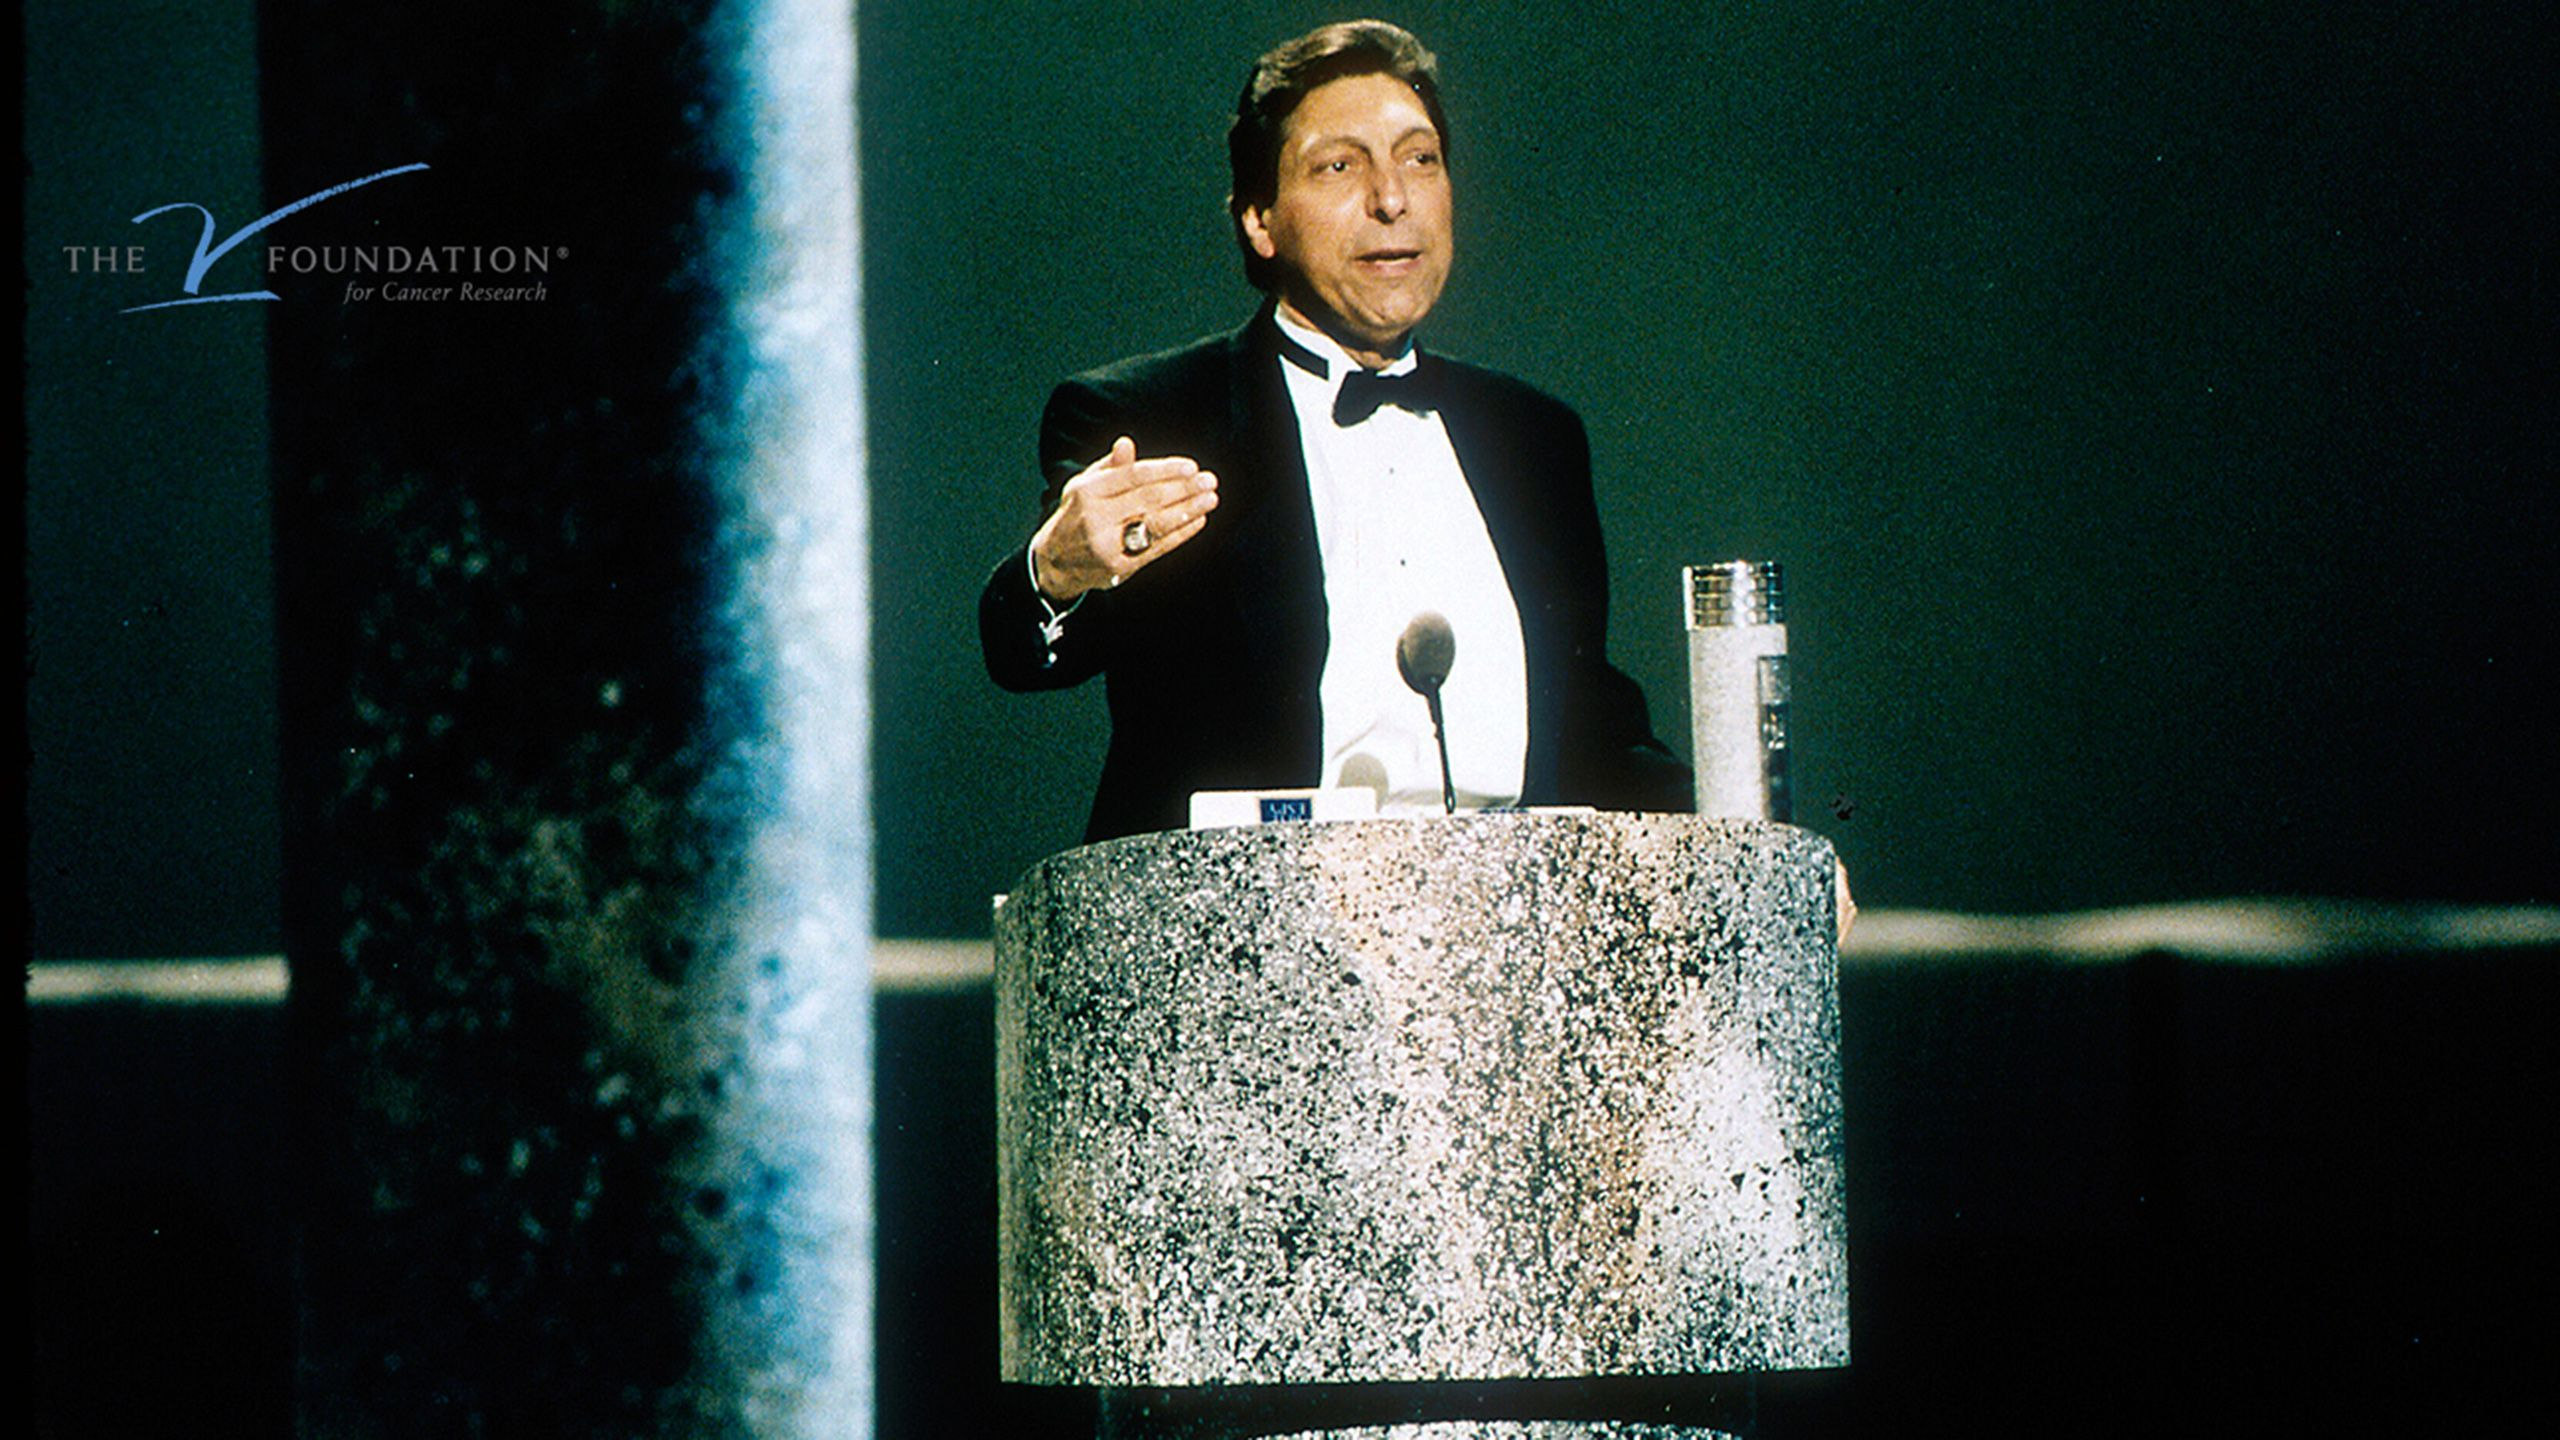 2017 Jimmy V Week For Cancer Research: Jim Valvano's ESPY Speech